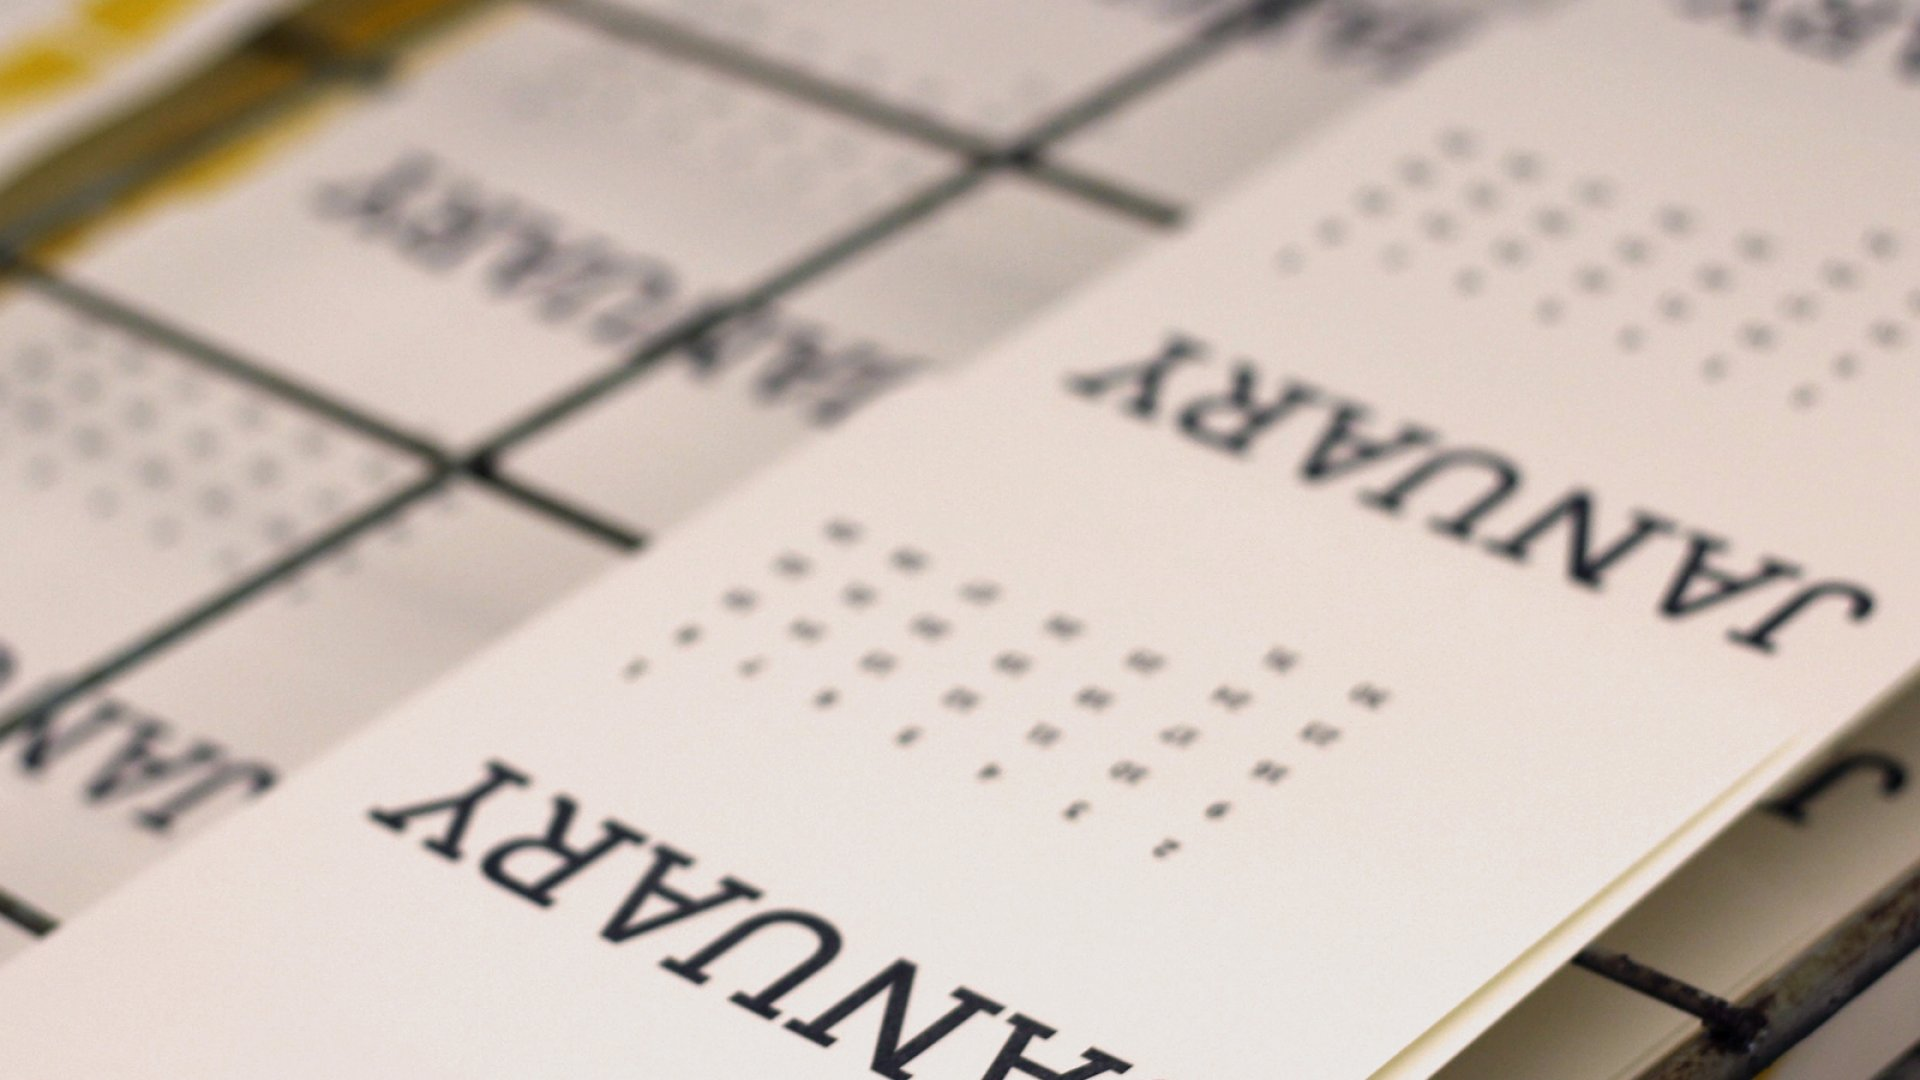 Why January 1st Is the Worst Day to Make Resolutions